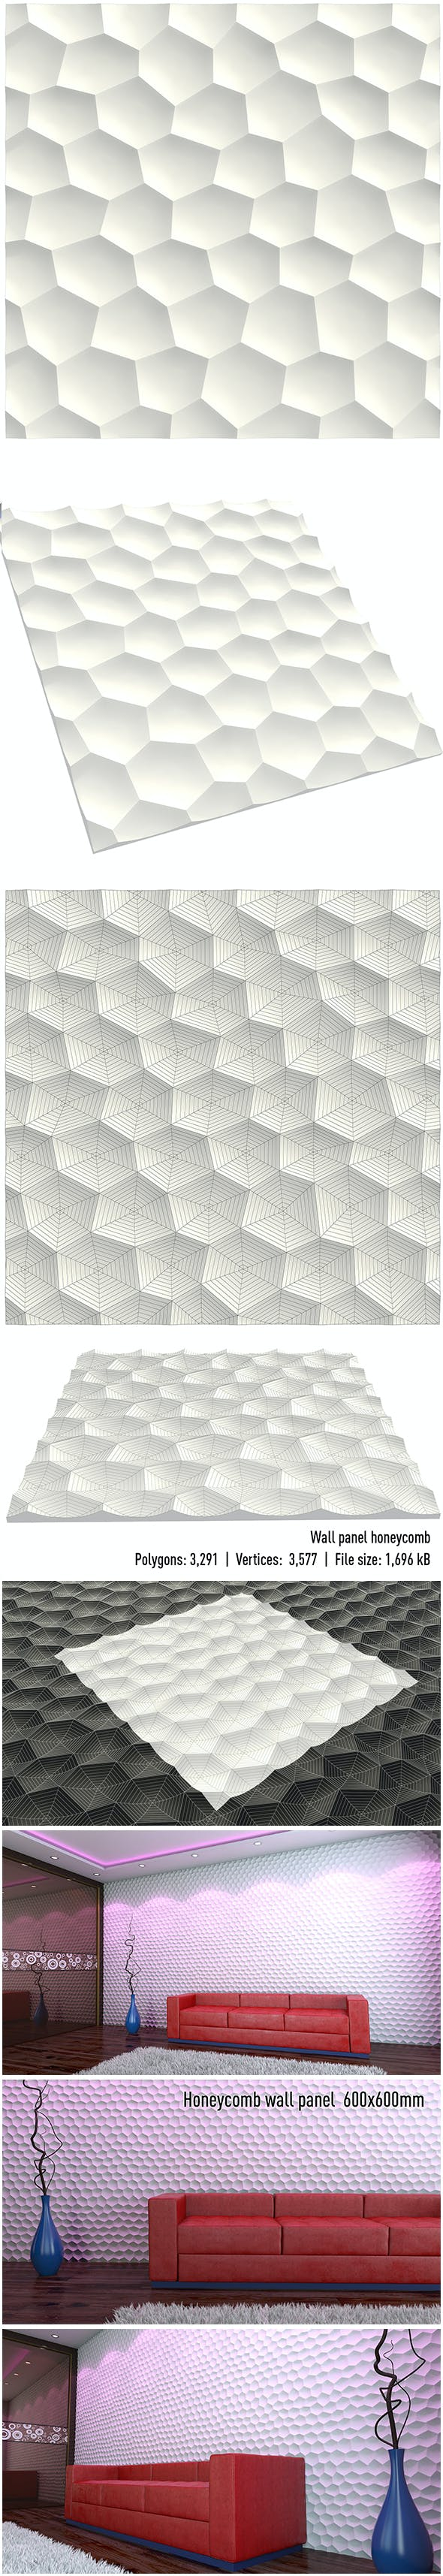 wall panel honeycomb - 3DOcean Item for Sale